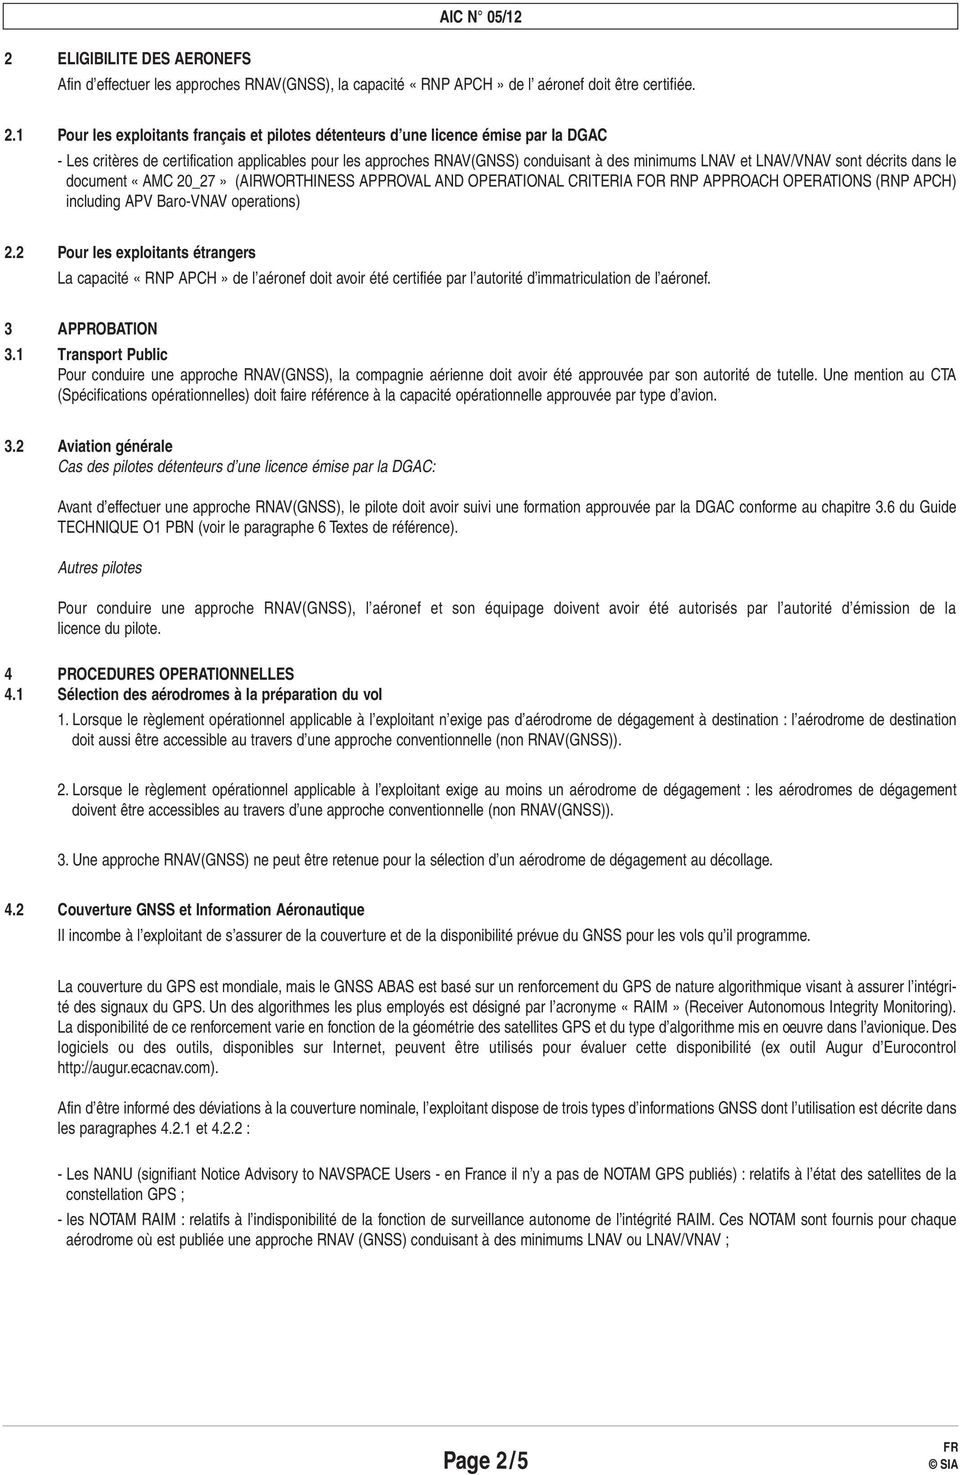 LNAV/VNAV sont décrits dans le document «AMC 20_27» (AIRWORTHINESS APPROVAL AND OPERATIONAL CRITERIA FOR RNP APPROACH OPERATIONS (RNP APCH) including APV Baro-VNAV operations) 2.